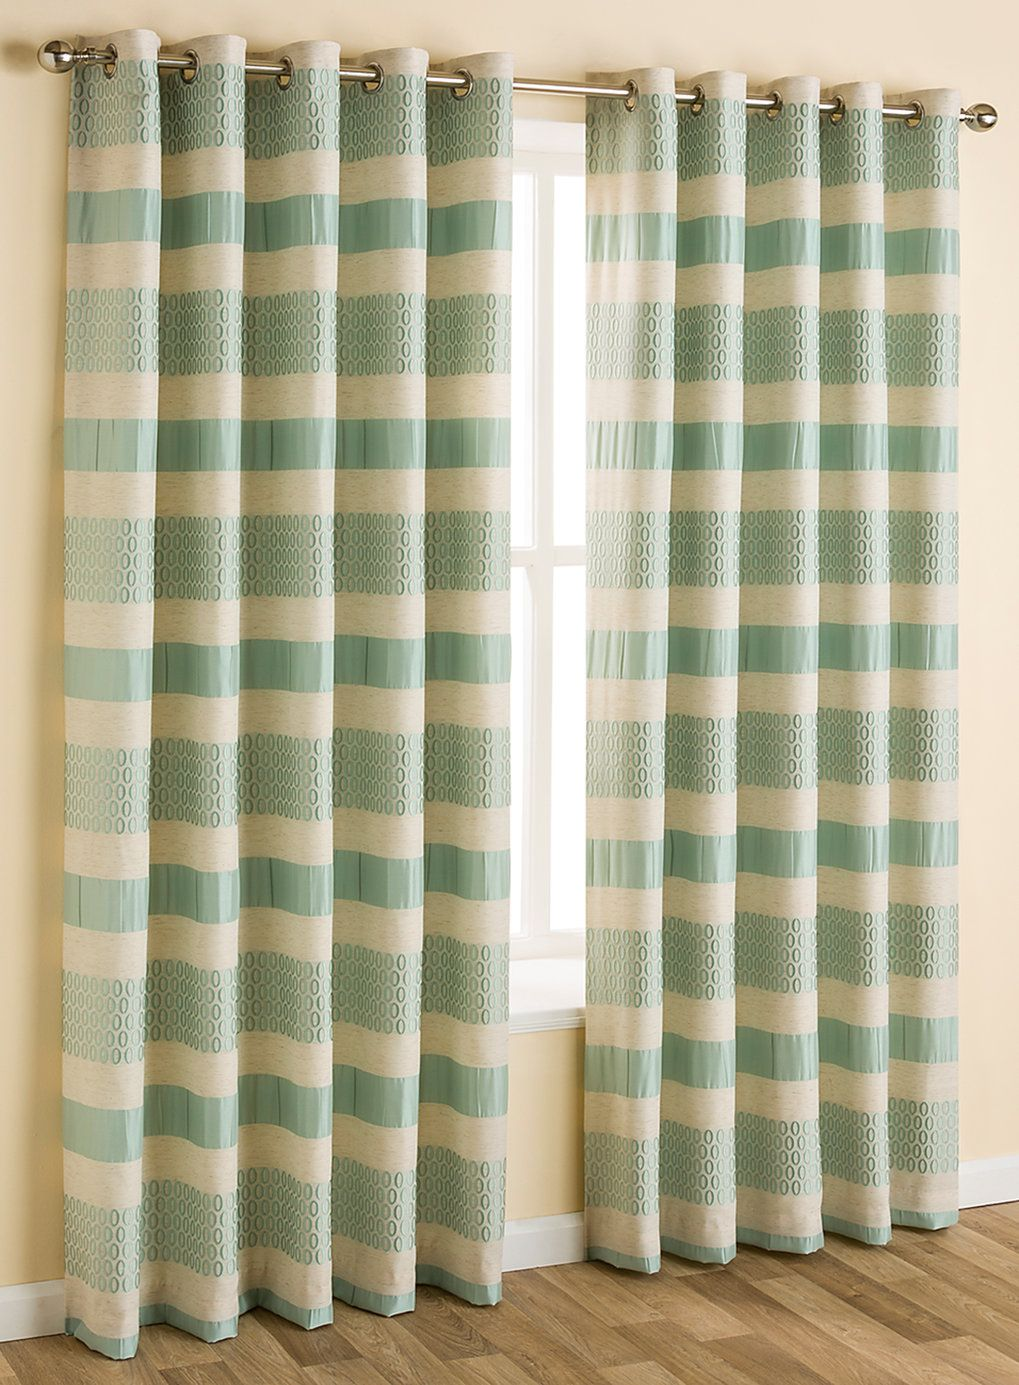 Dress Your Windows In Style With Our Range Of Curtains Poles And Accessories At Bhs There Is Something To Suit Every Taste